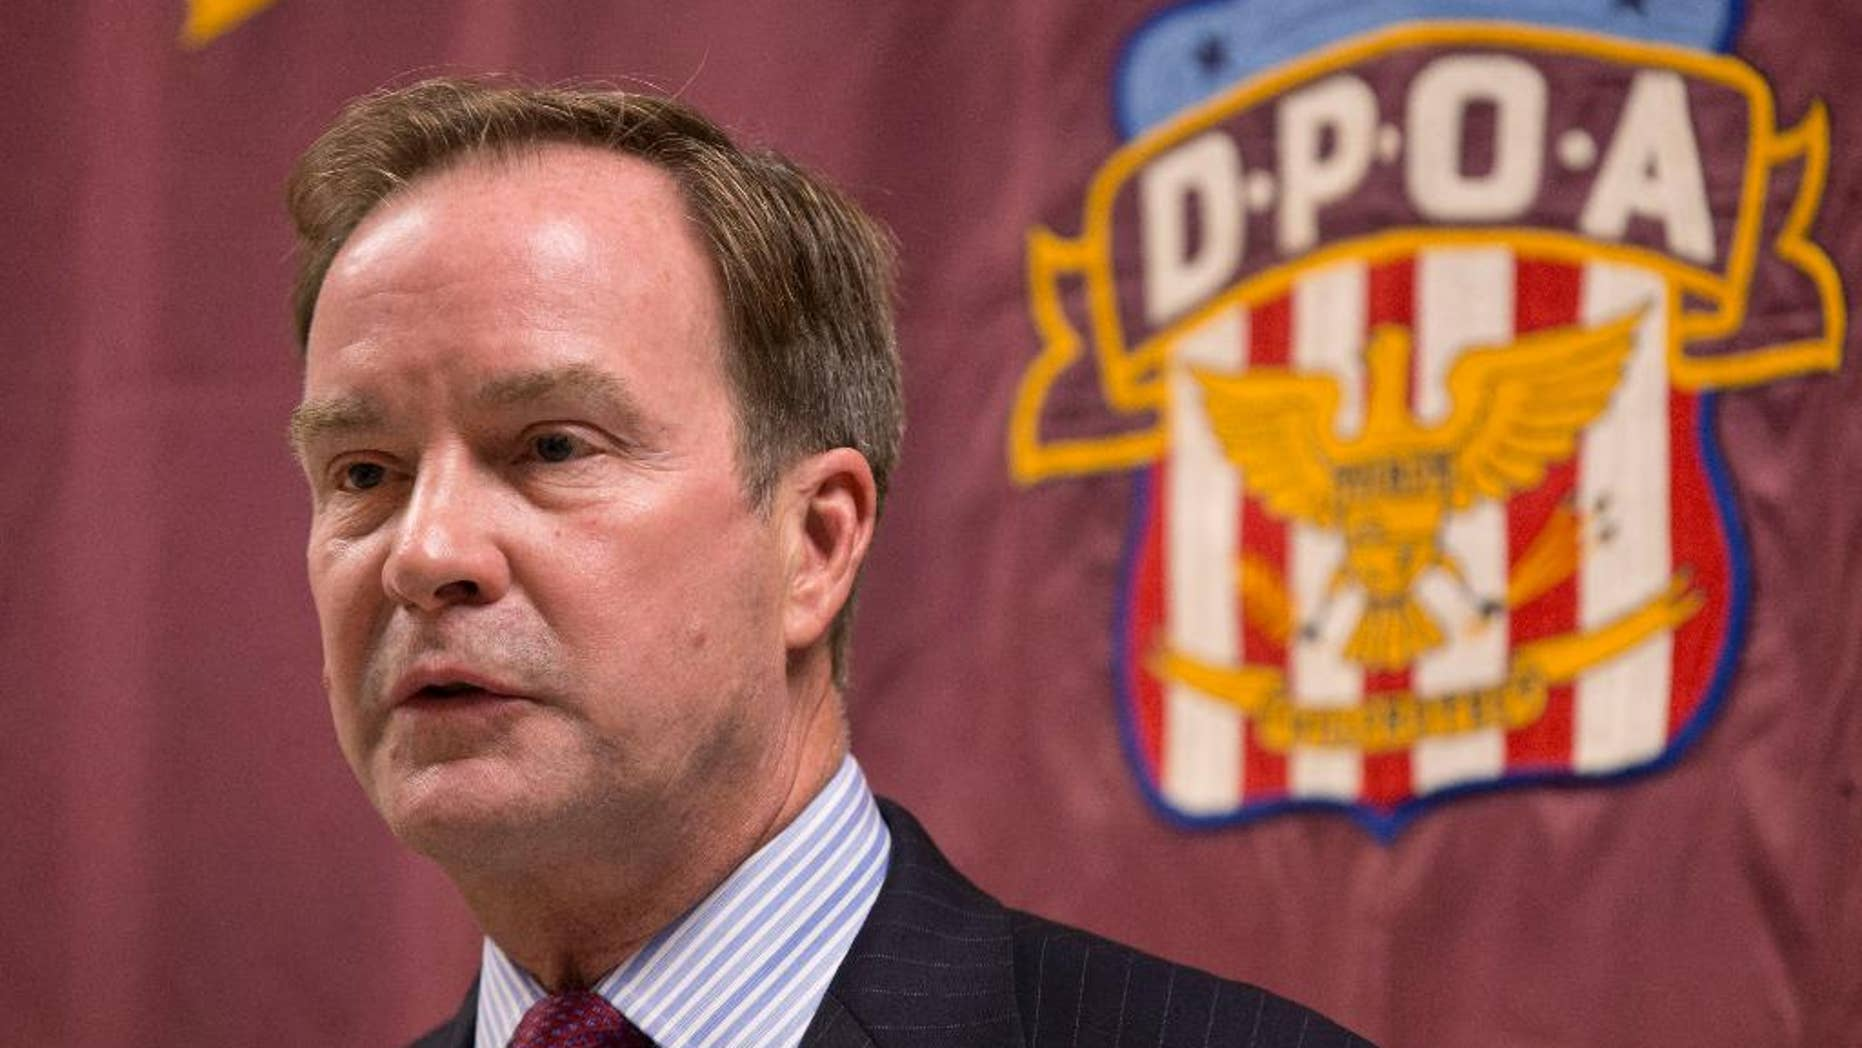 FILE - In this Sept. 10, 2014 file photo, Attorney General Bill Schuette speaks at the Detroit Police Officers Association in Detroit. Michigan's attorney general Schuette will announce criminal charges Wednesday, April 20, 2016, against two state regulators and a Flint employee, alleging wrongdoing related to the city's lead-tainted water crisis, according to government officials familiar with the investigation. (AP Photo/Paul Sancya, File)